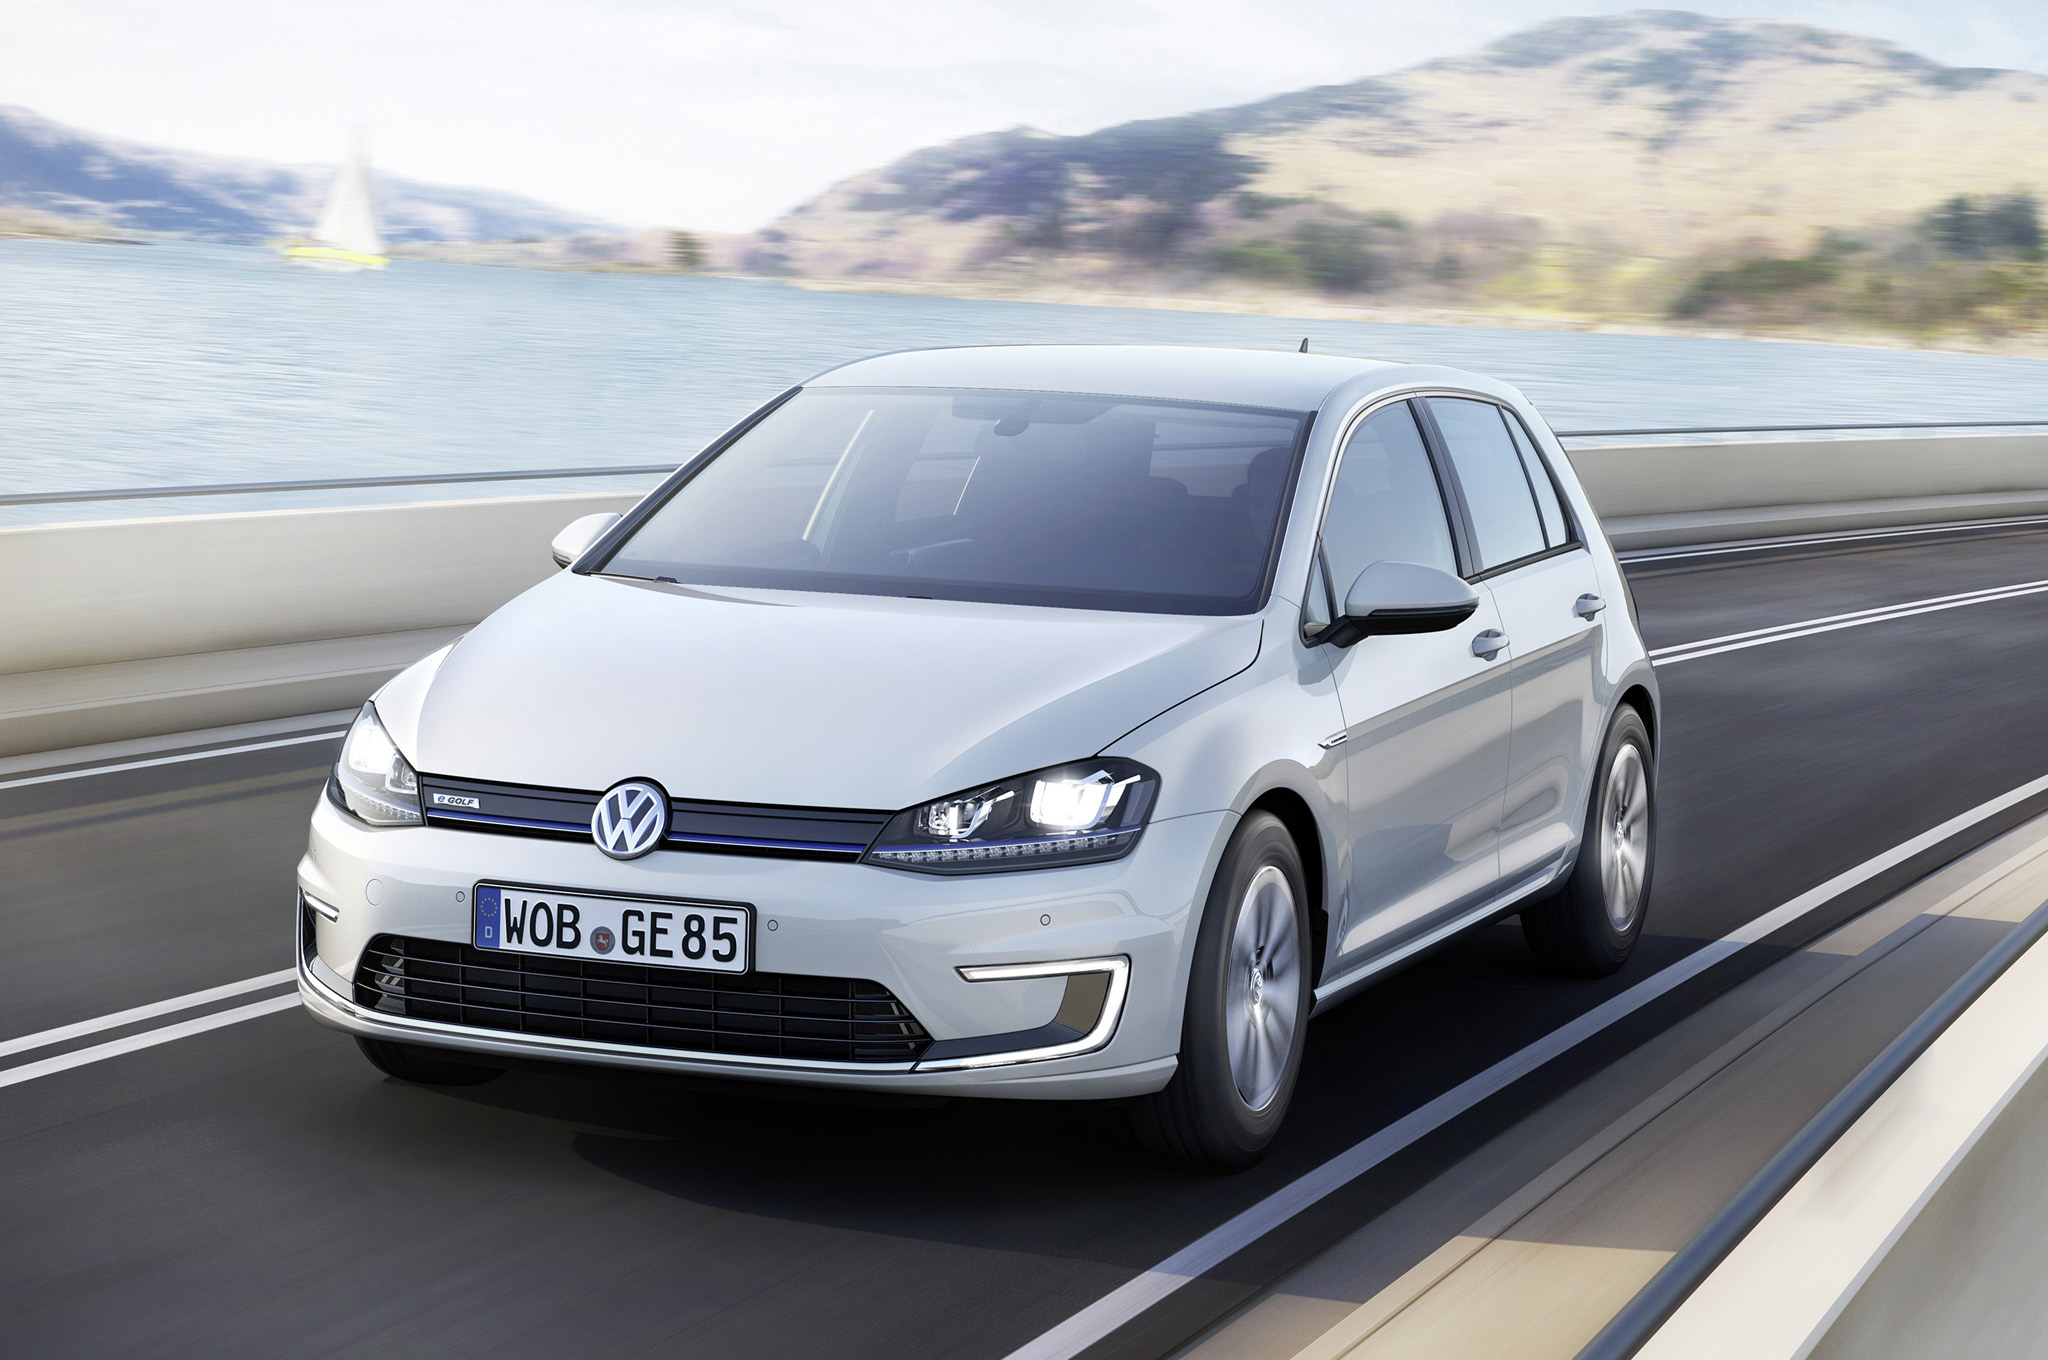 2015 Volkswagen E-golf #15